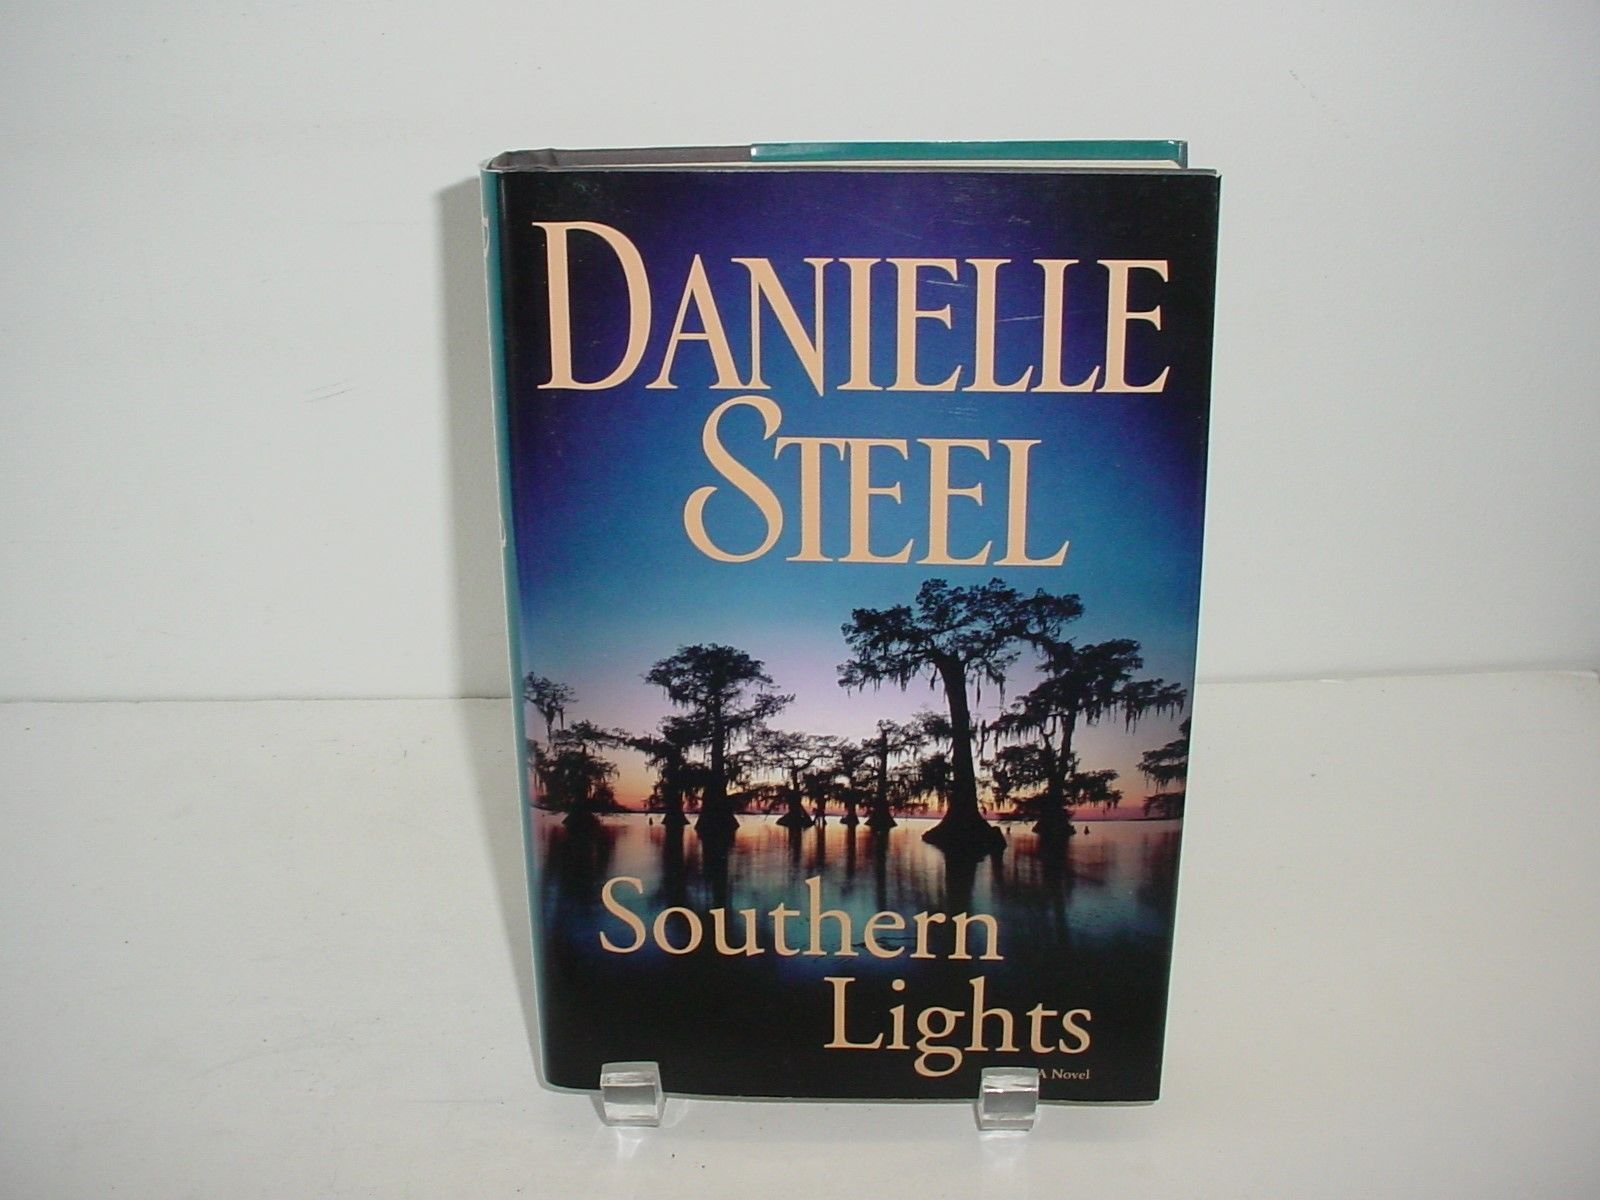 Primary image for Southern Lights by Danielle Steel (2009, Hardcover) Novel Book